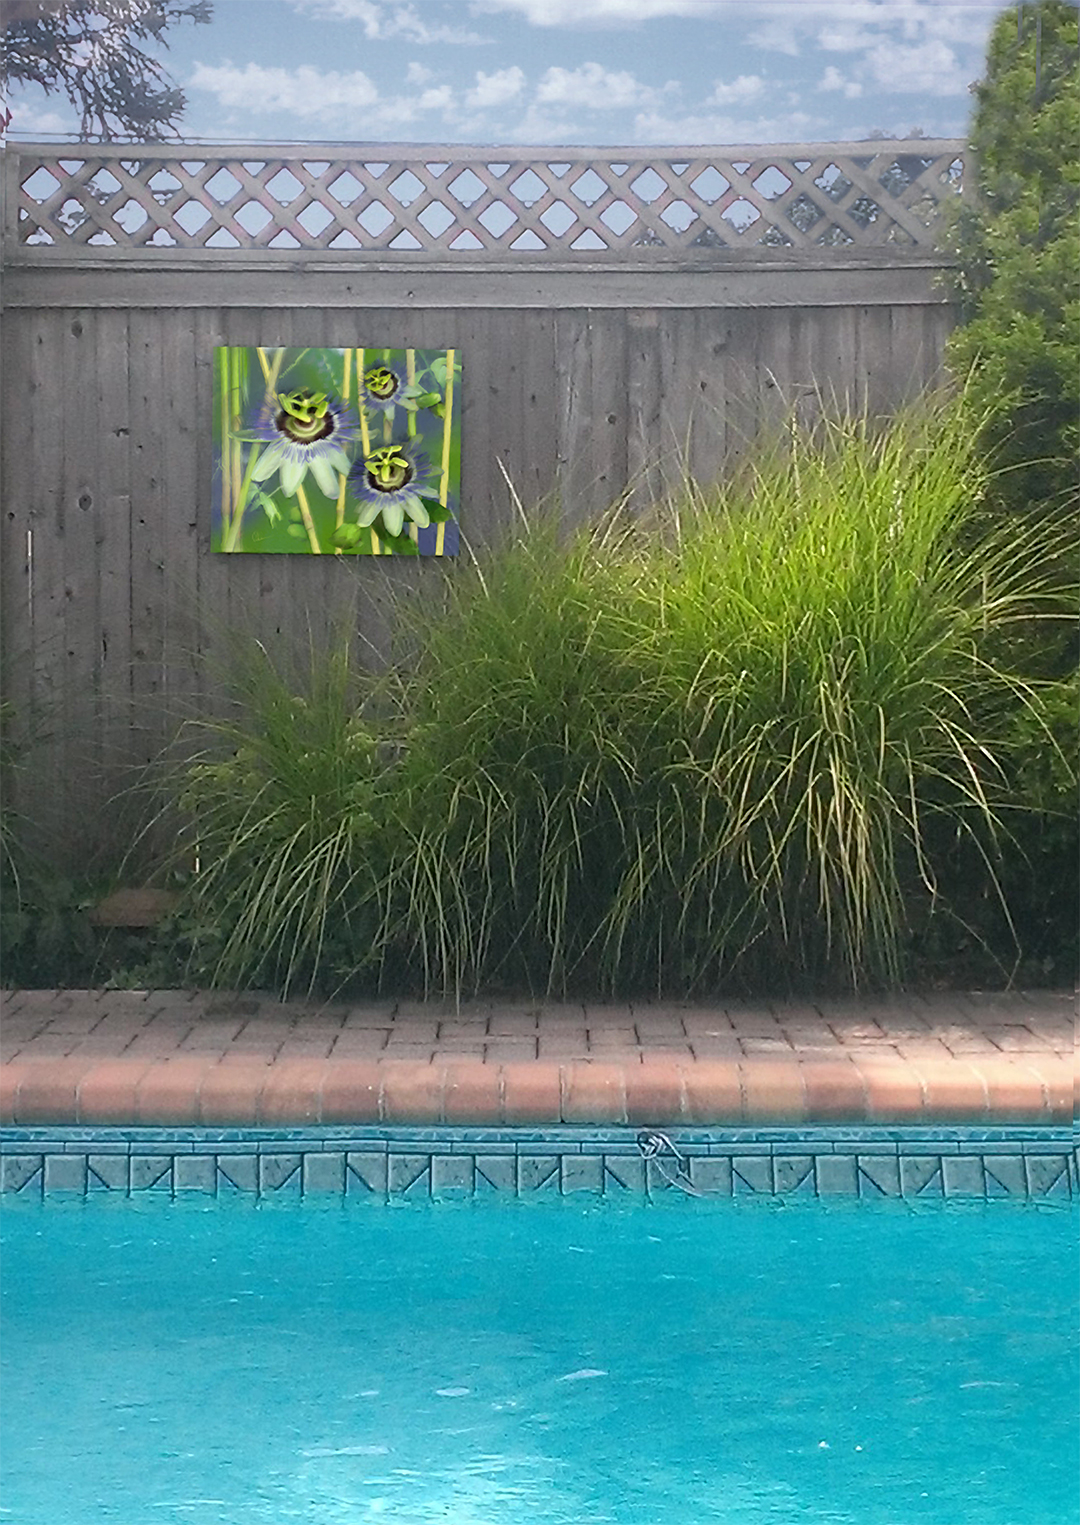 2014-08-ahern-aluminum-painting-pool-15x72